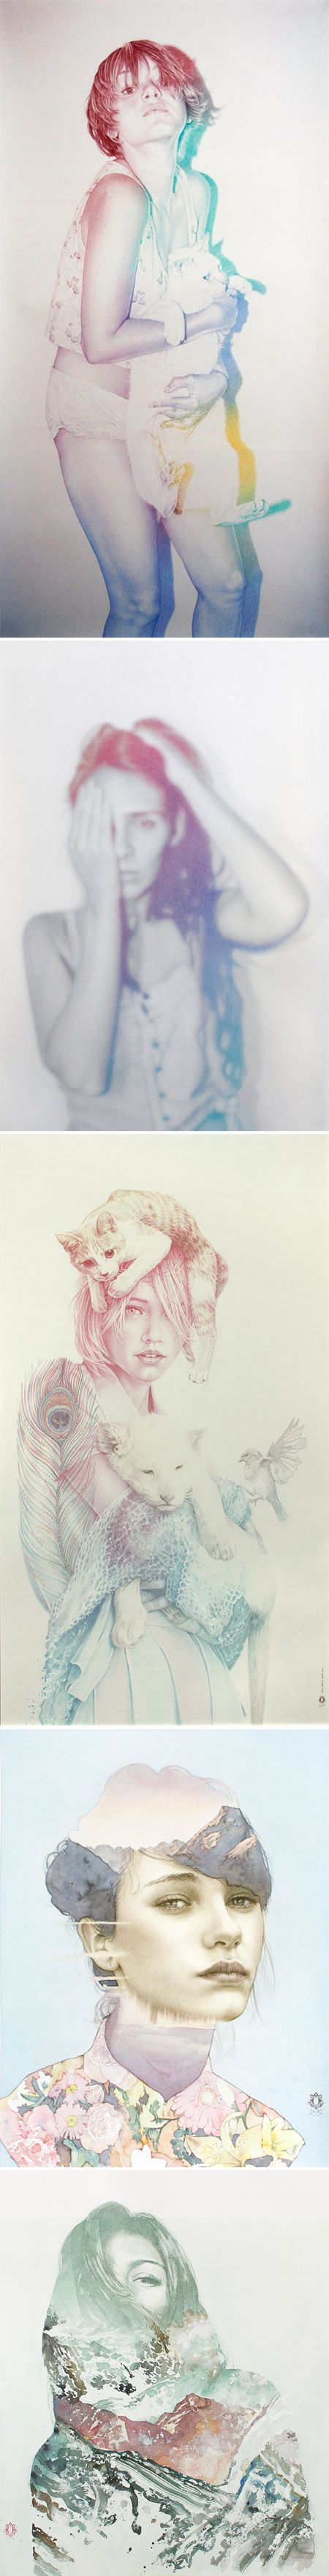 oriol angrill jorda - drawings with colored pencil